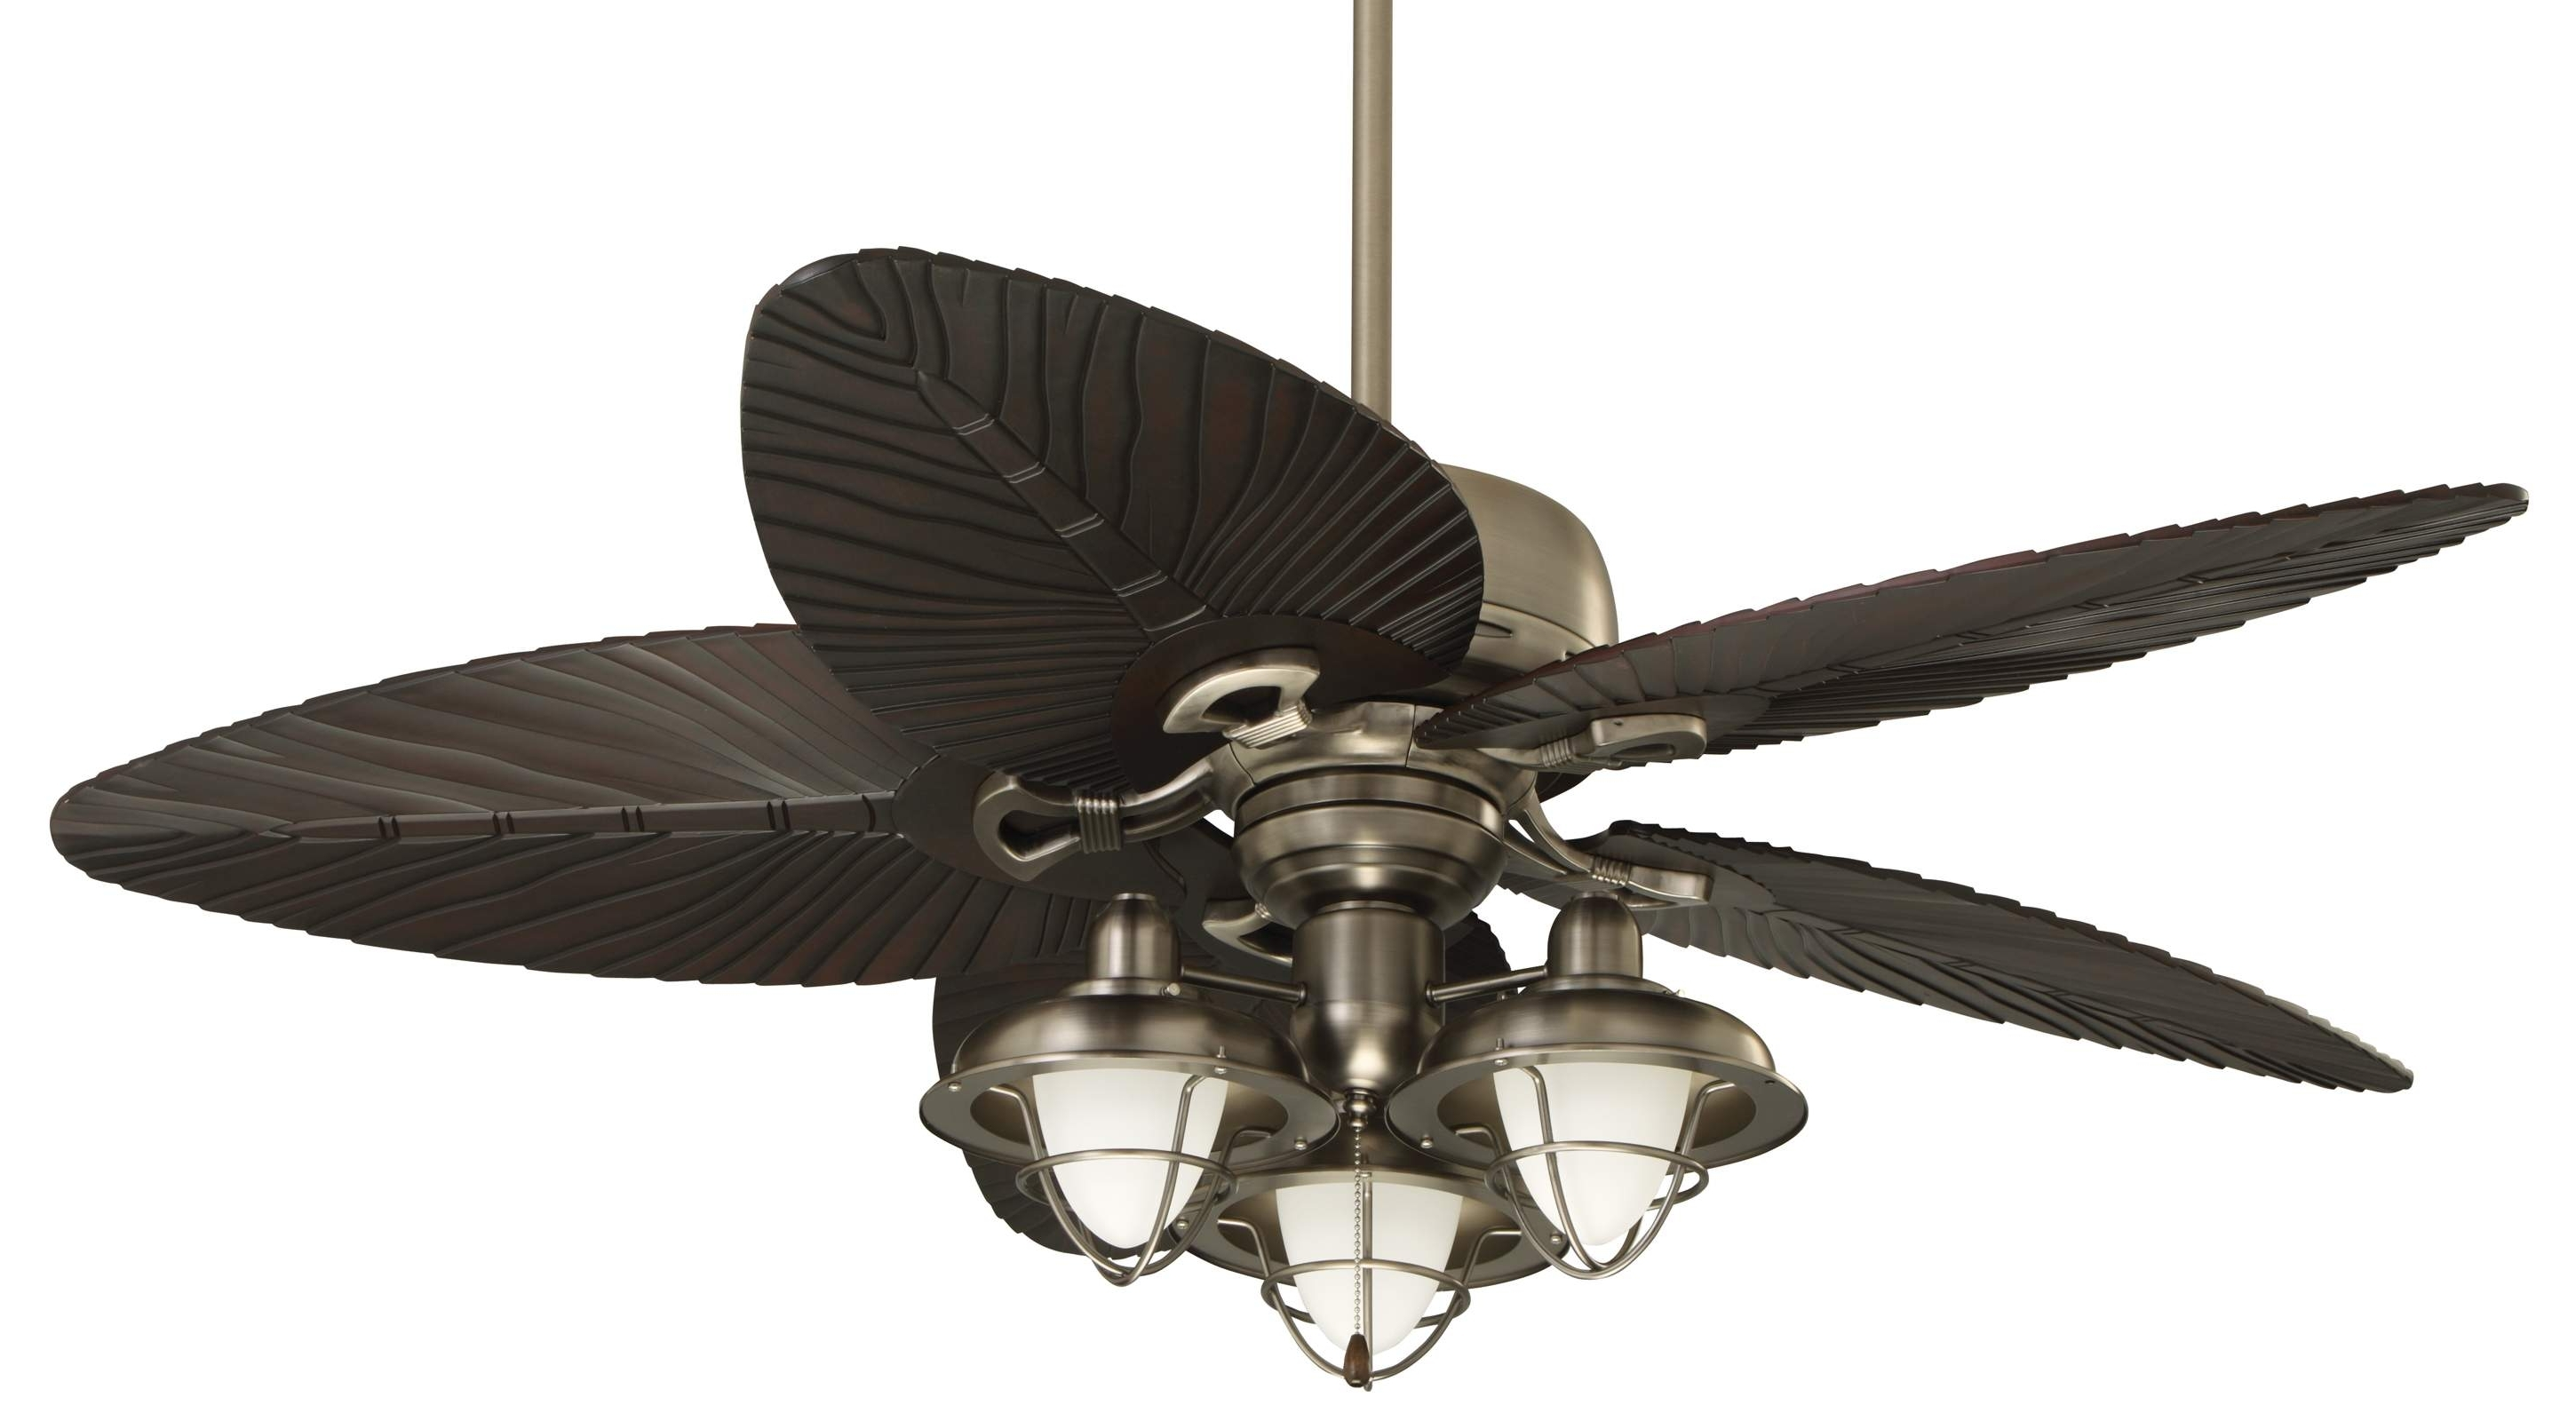 2018 Decor: Bring An Island Look Into Your Home With Cool Ceiling Fan Throughout Outdoor Ceiling Fans With Leaf Blades (View 1 of 20)